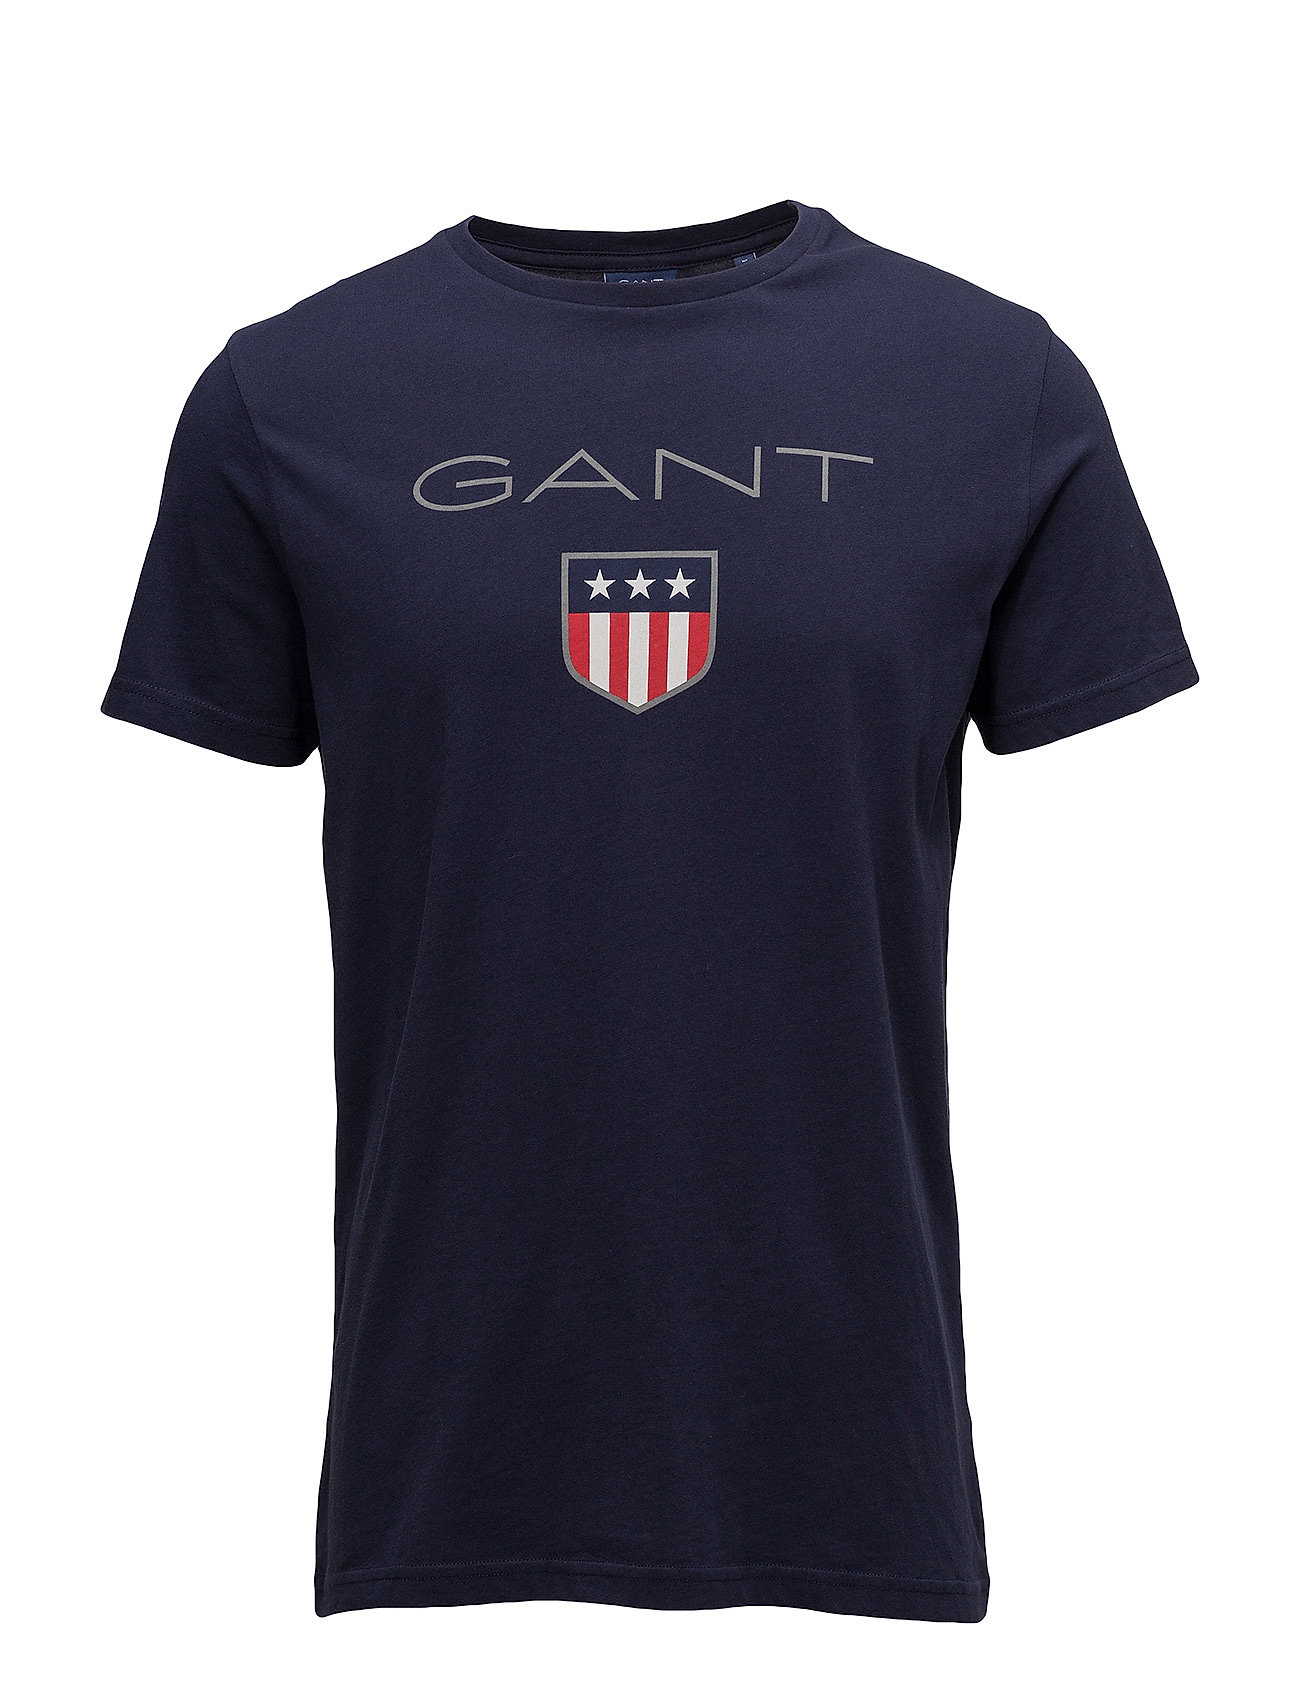 Gant SHIELD SS T-SHIRT - EVENING BLUE